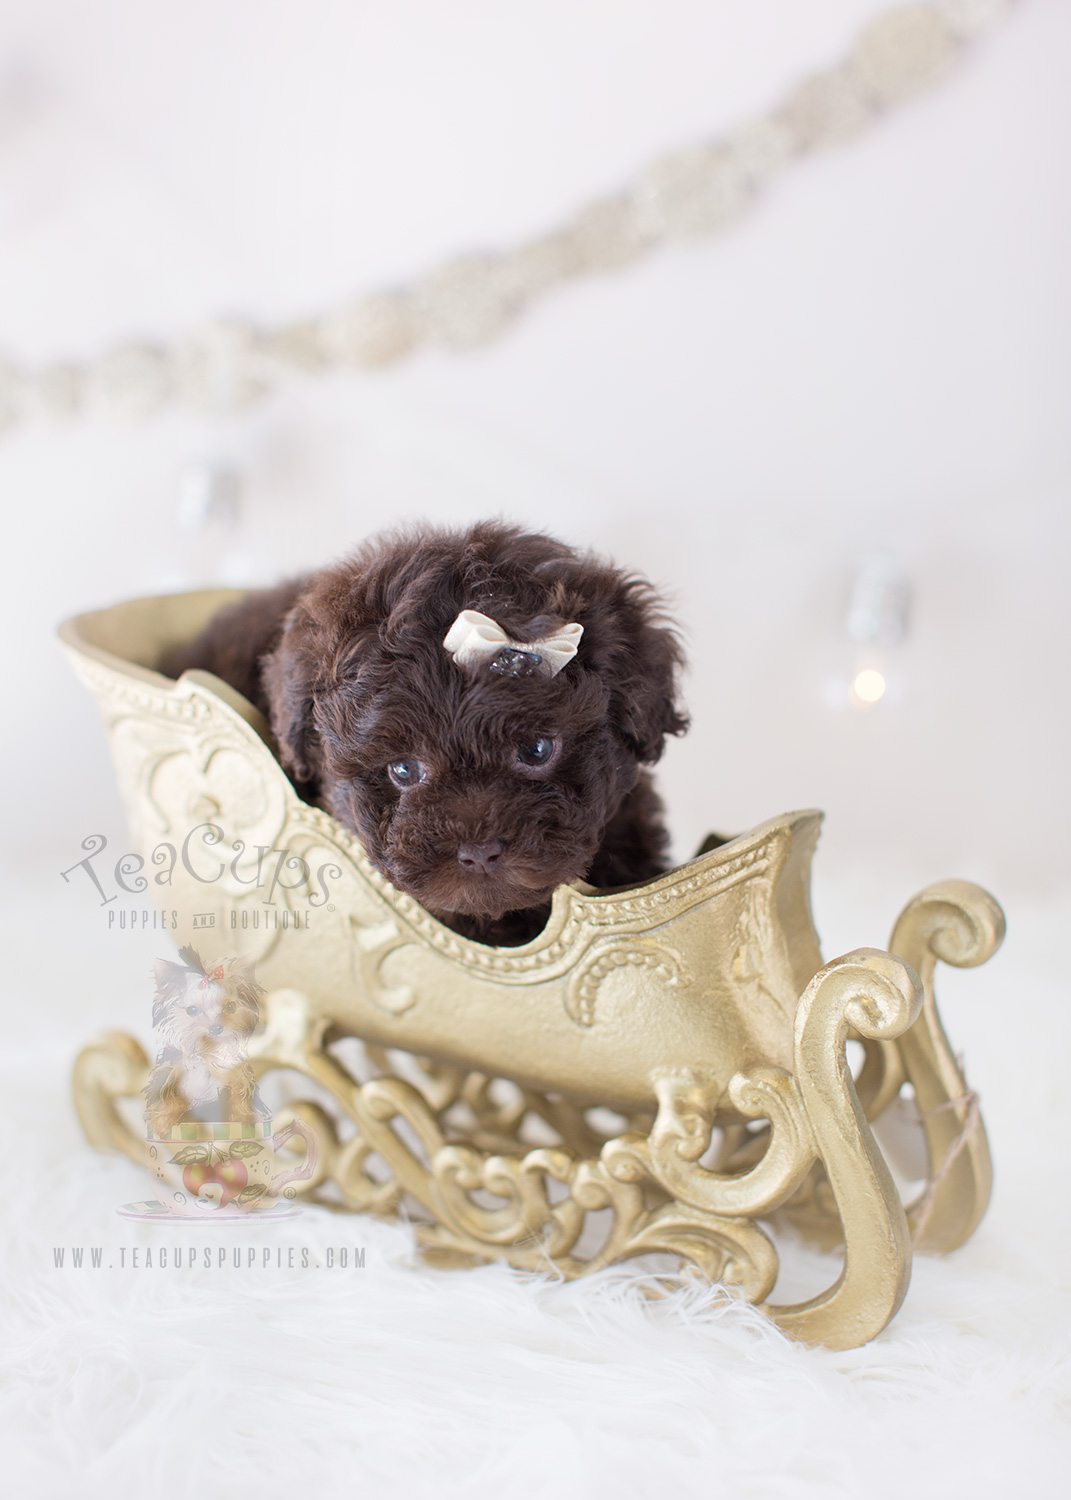 For Sale #292 Teacup Puppies Chocolate Poodle Puppy